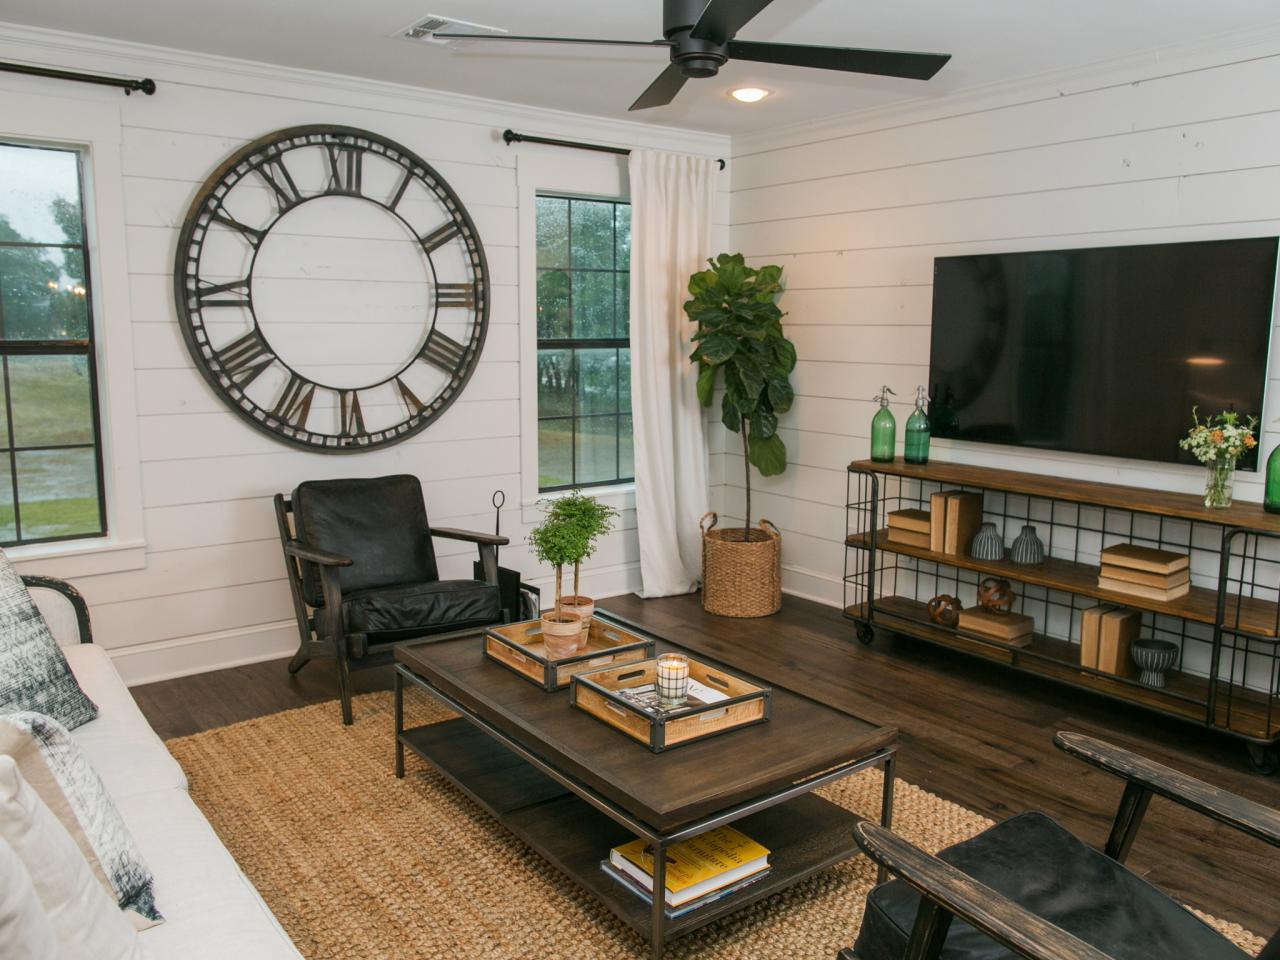 Photo HGTV - inspired shiplap walls for a rustic home look.